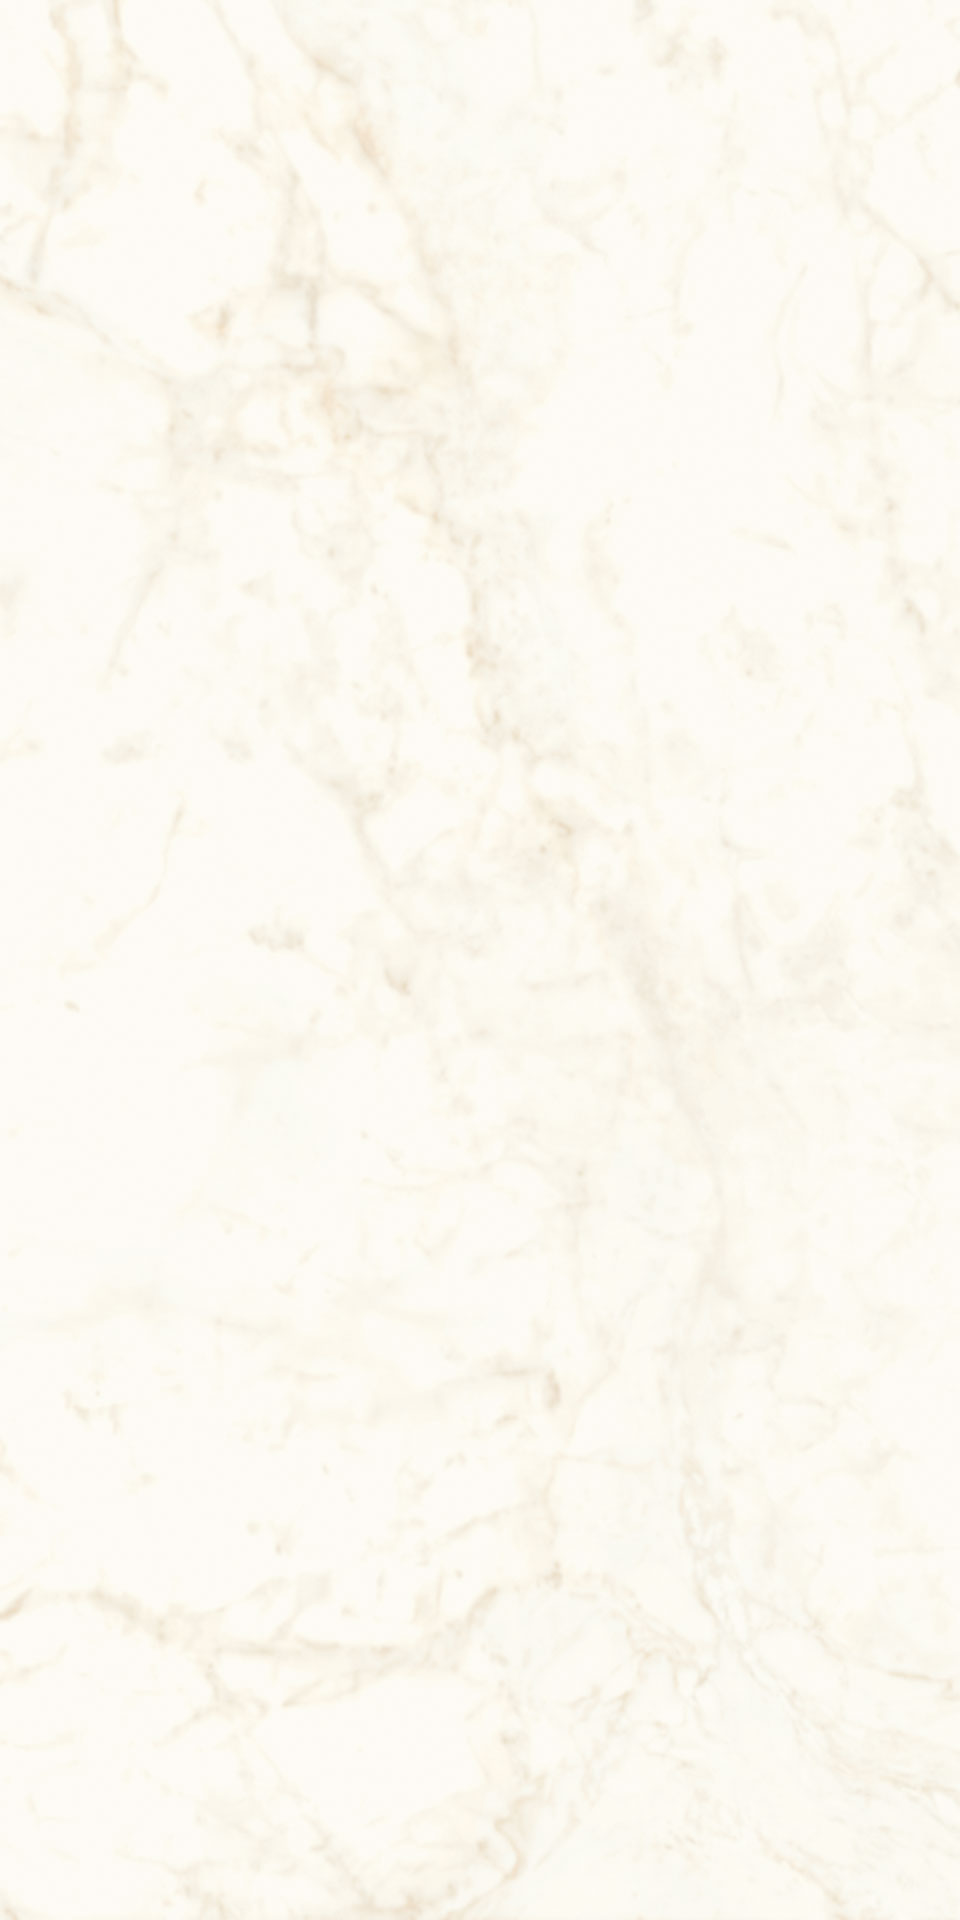 120x240-4-large-sized-9mm-polished-finishing-calacatta-delicato-porcelain-slab